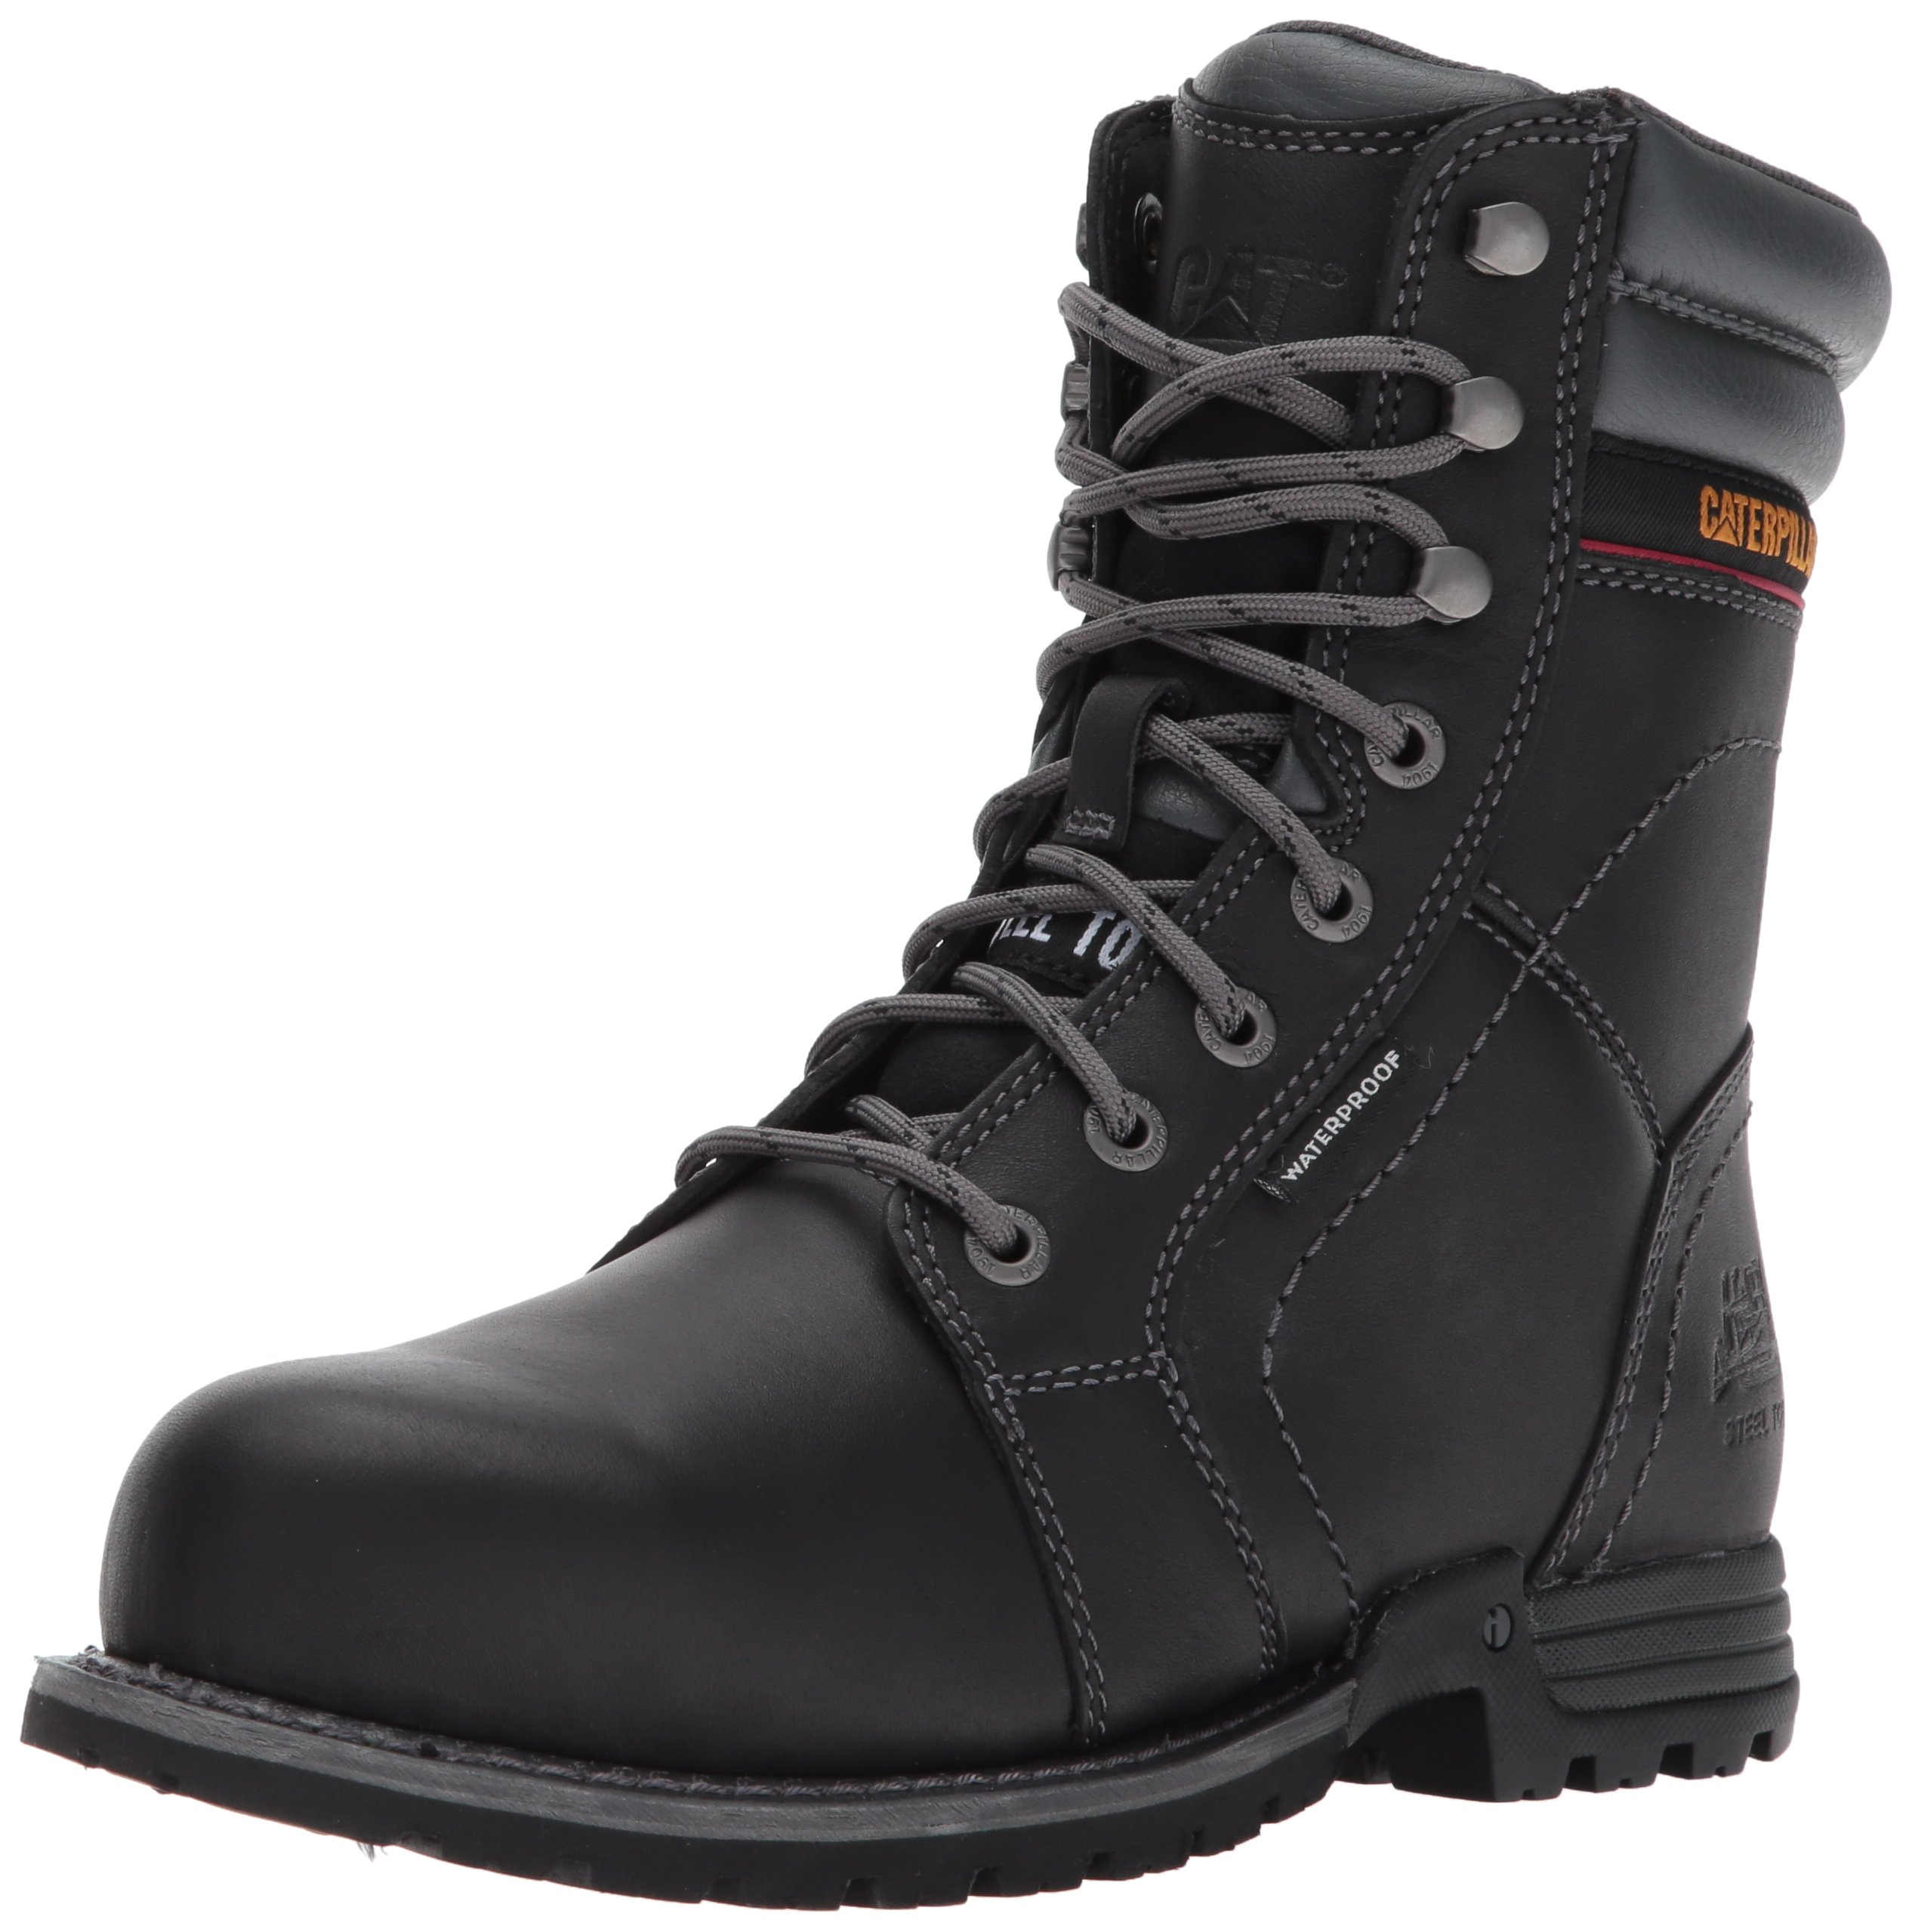 Caterpillar Women's Echo Waterproof Steel Toe Industrial and Construction Shoe, Black, 7.5 M US